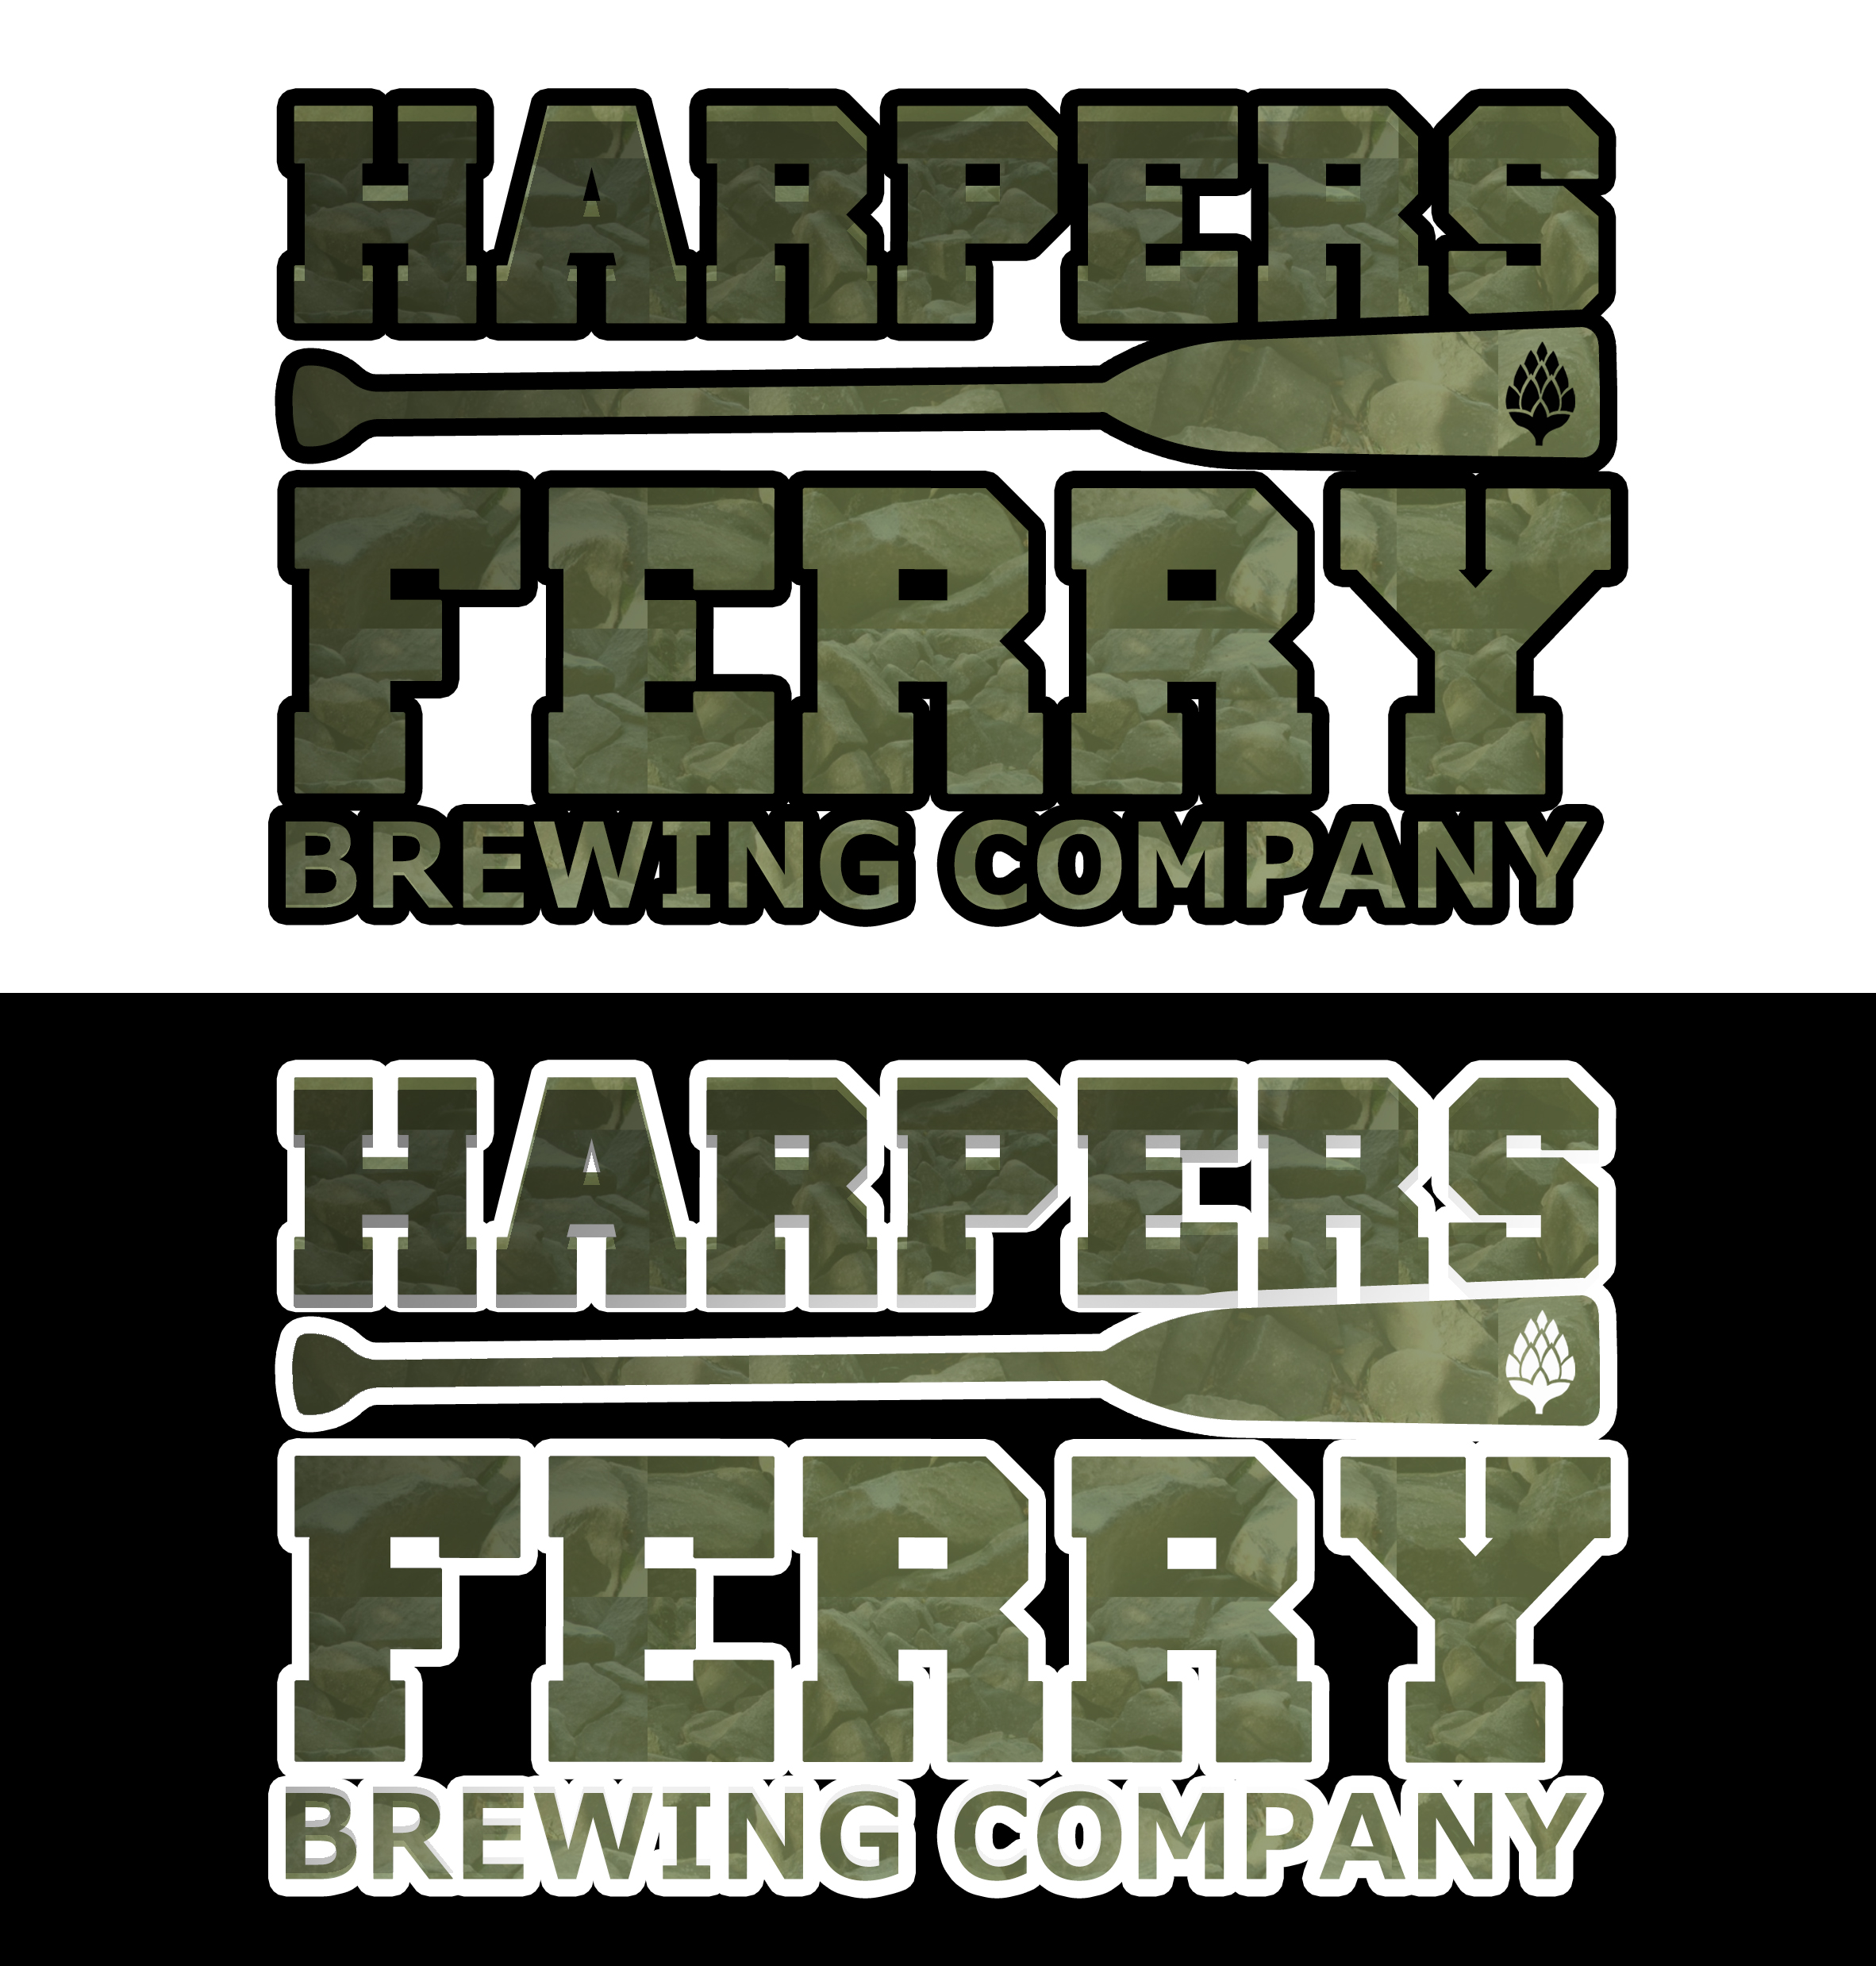 Logo Design by JSDESIGNGROUP - Entry No. 133 in the Logo Design Contest Unique Logo Design Wanted for Harpers ferry brewing company.